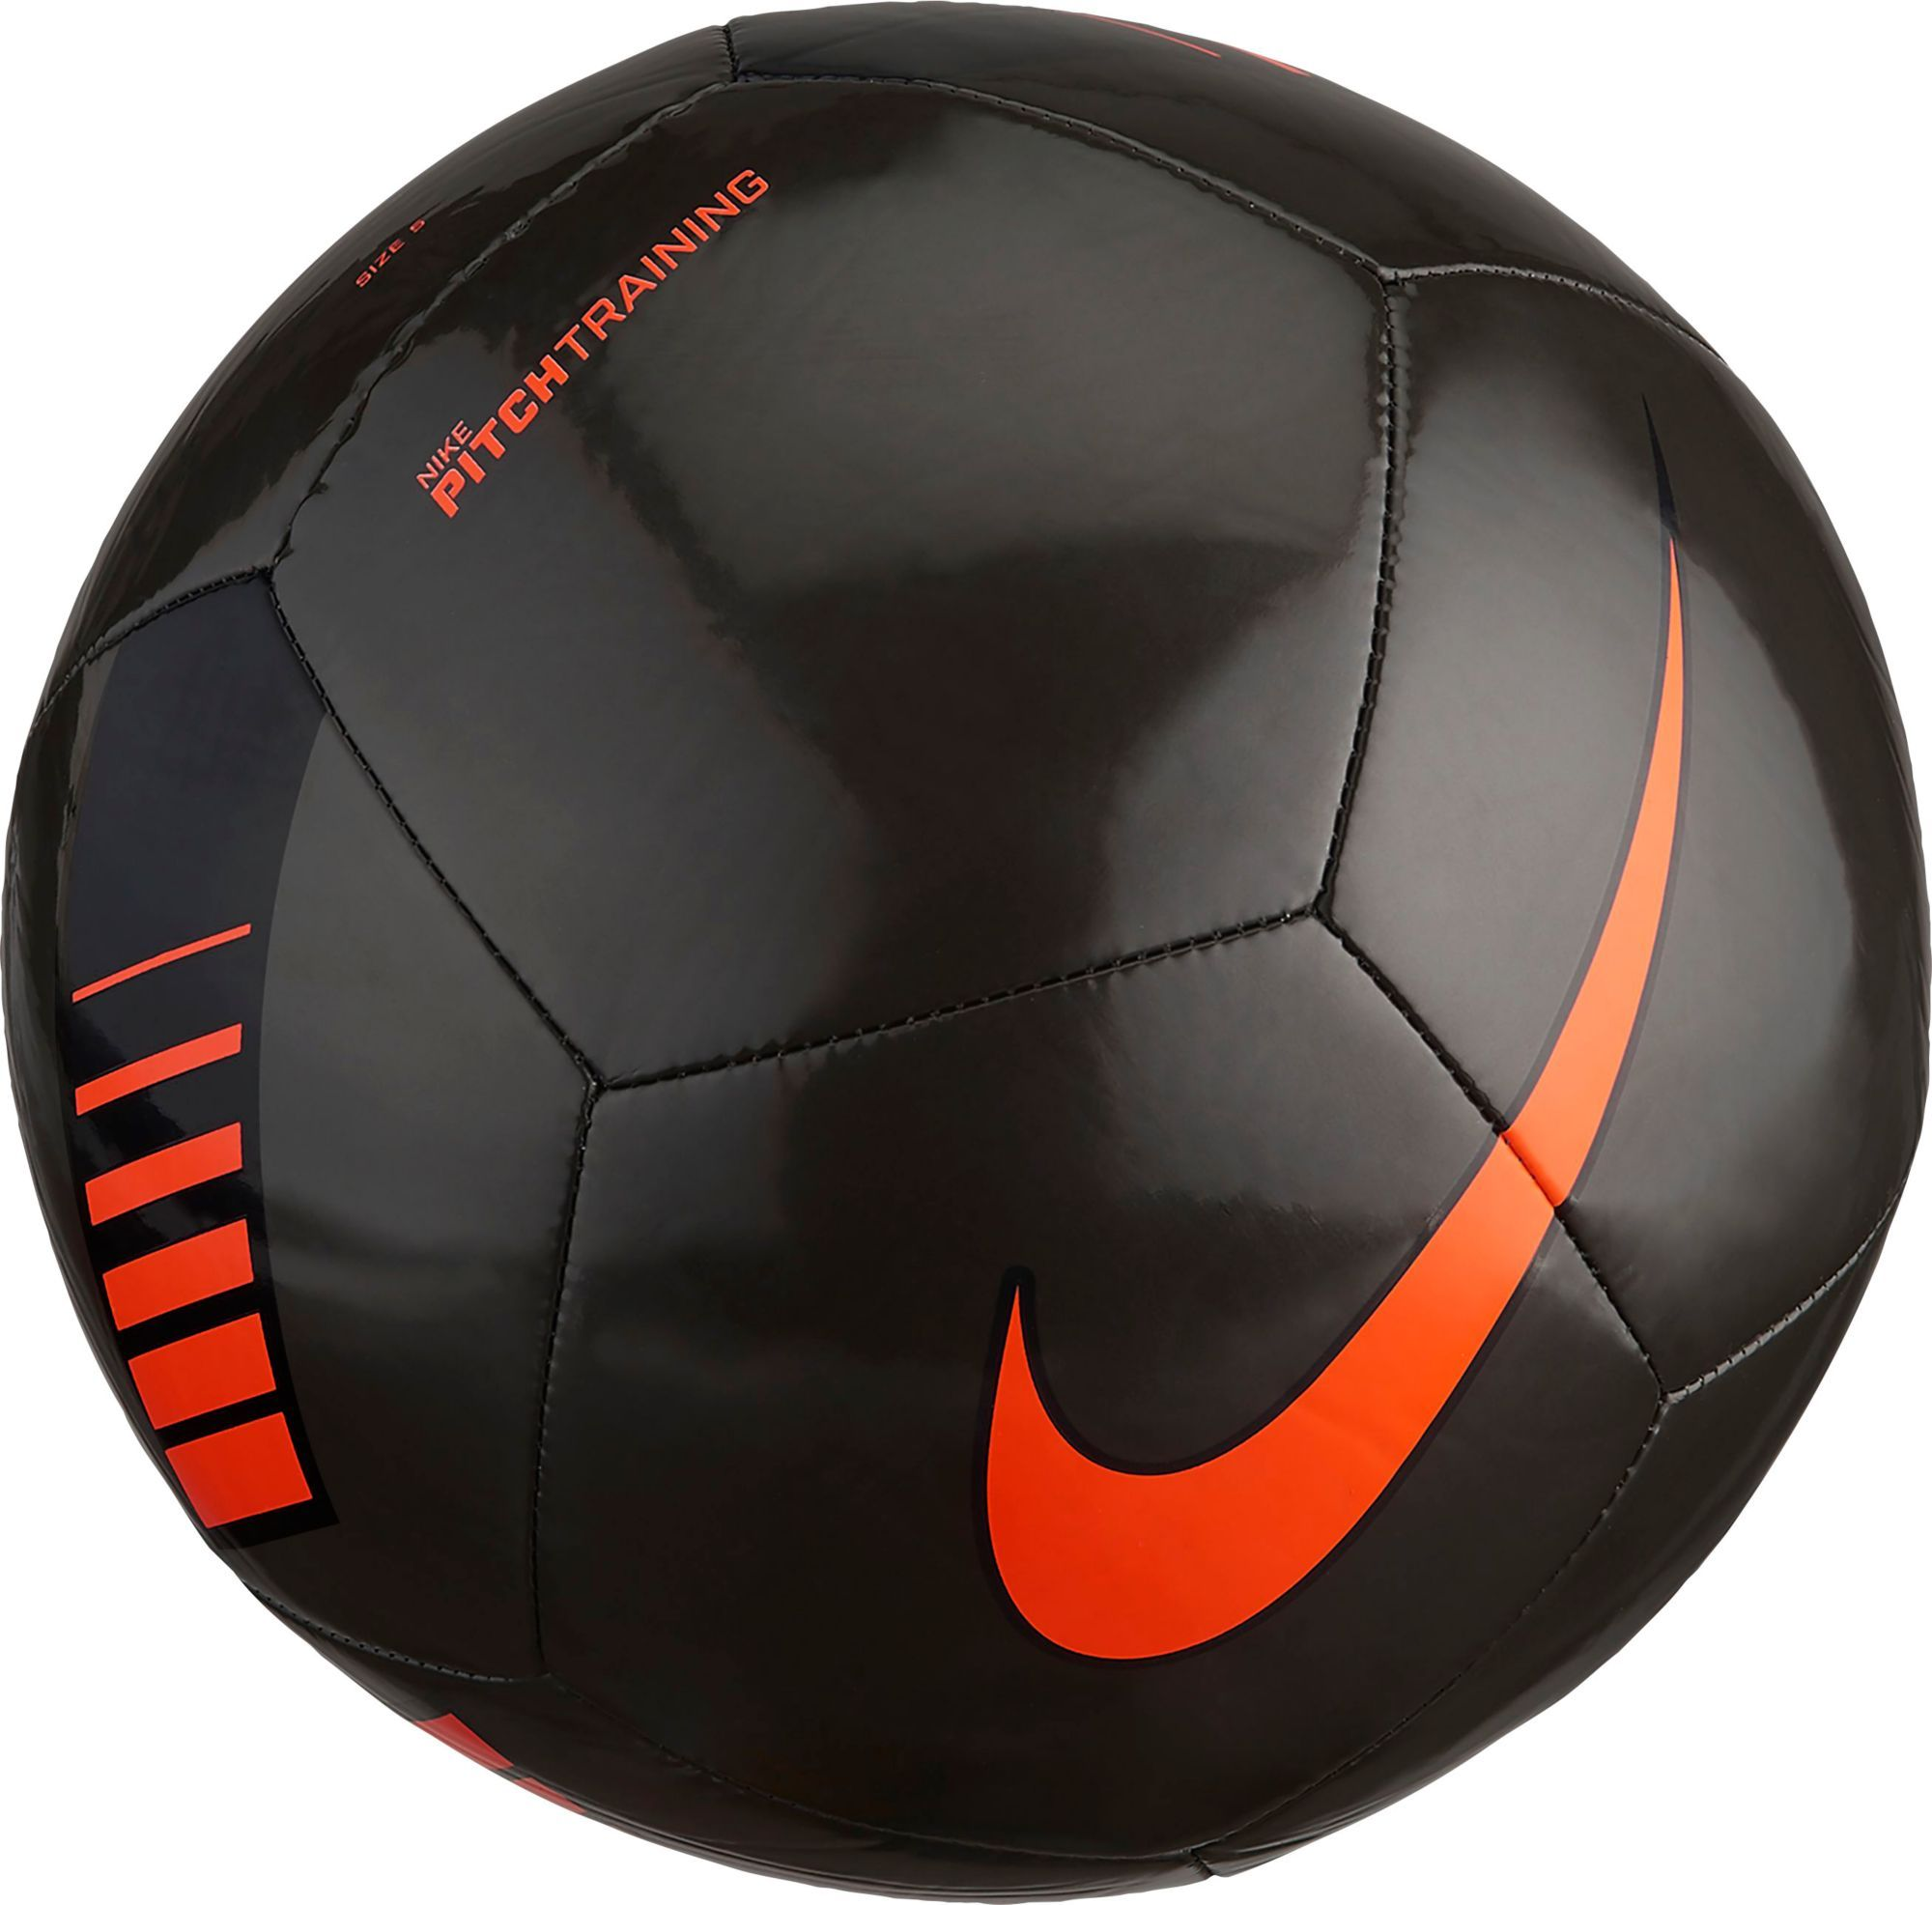 ae2bf38a683 Nike Pitch Training Soccer Ball